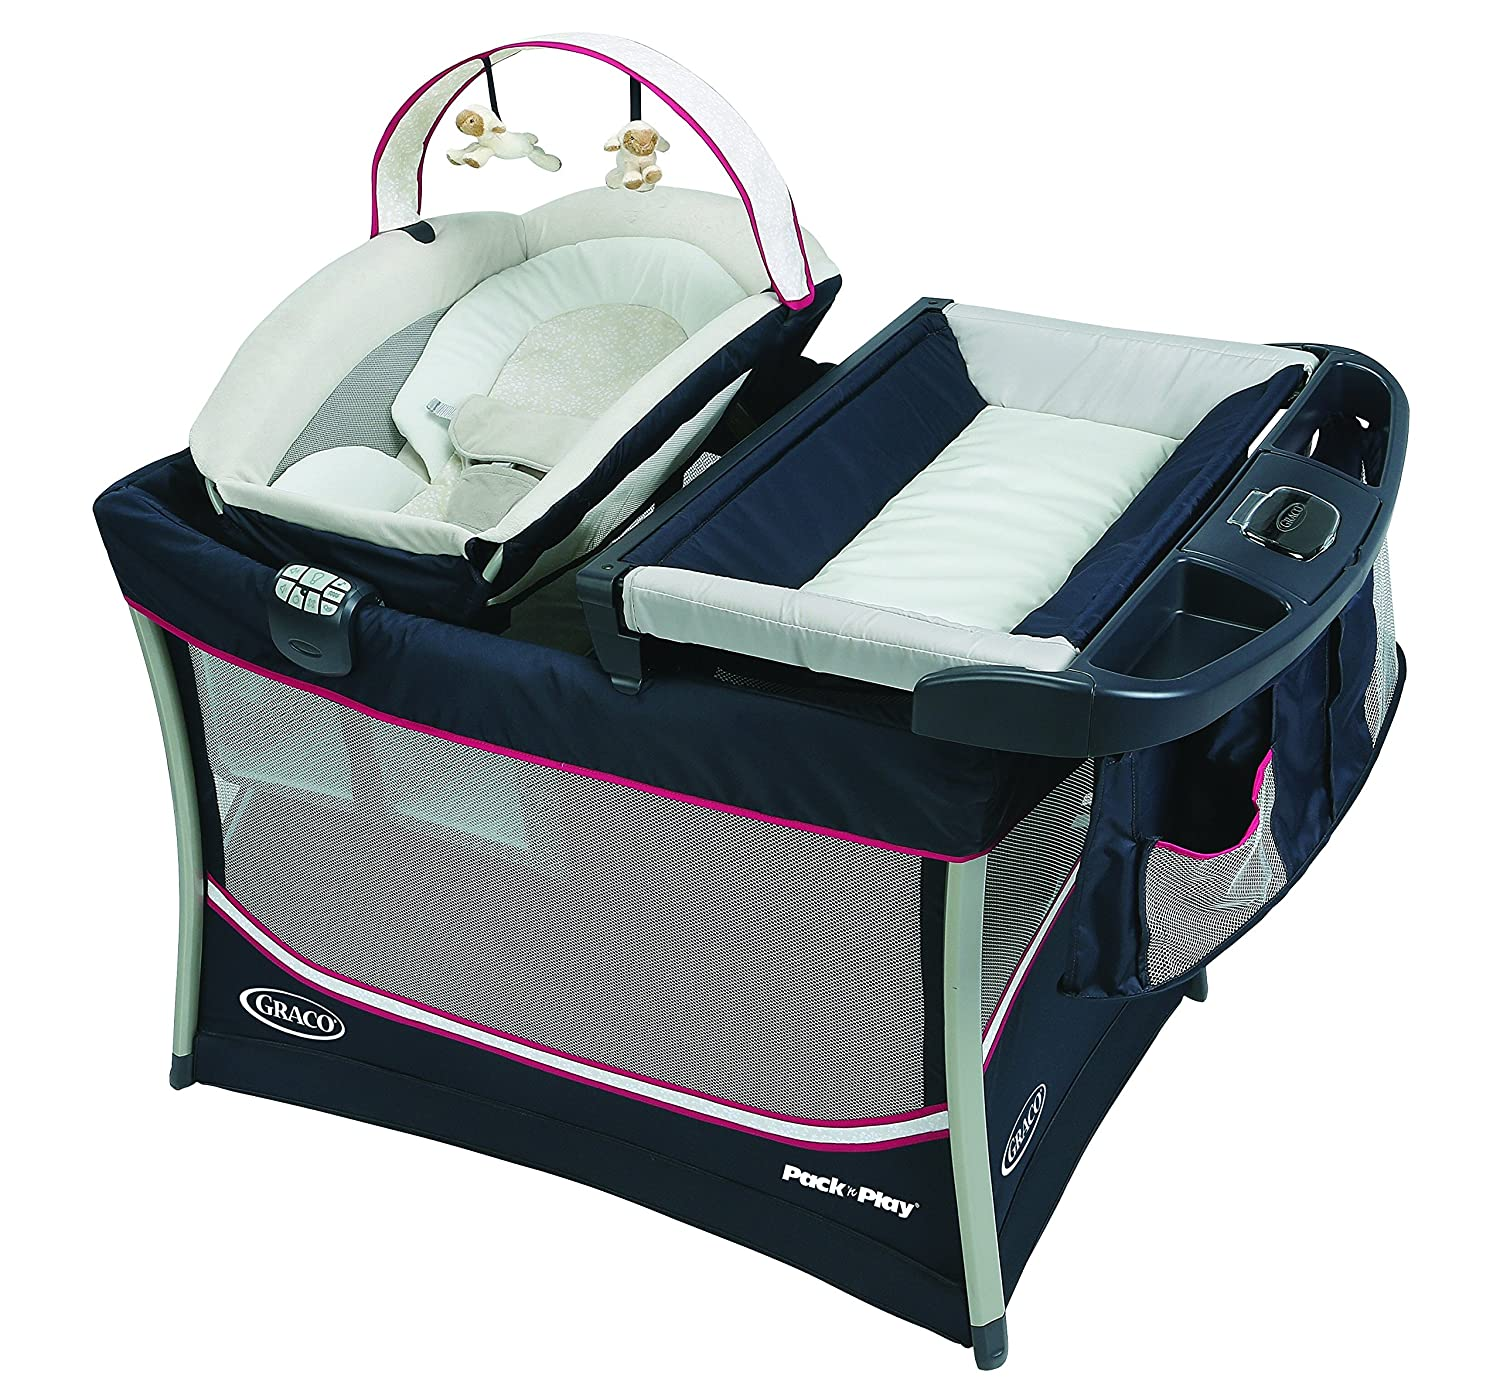 Graco Everest Pack n Play Playard, Ayla